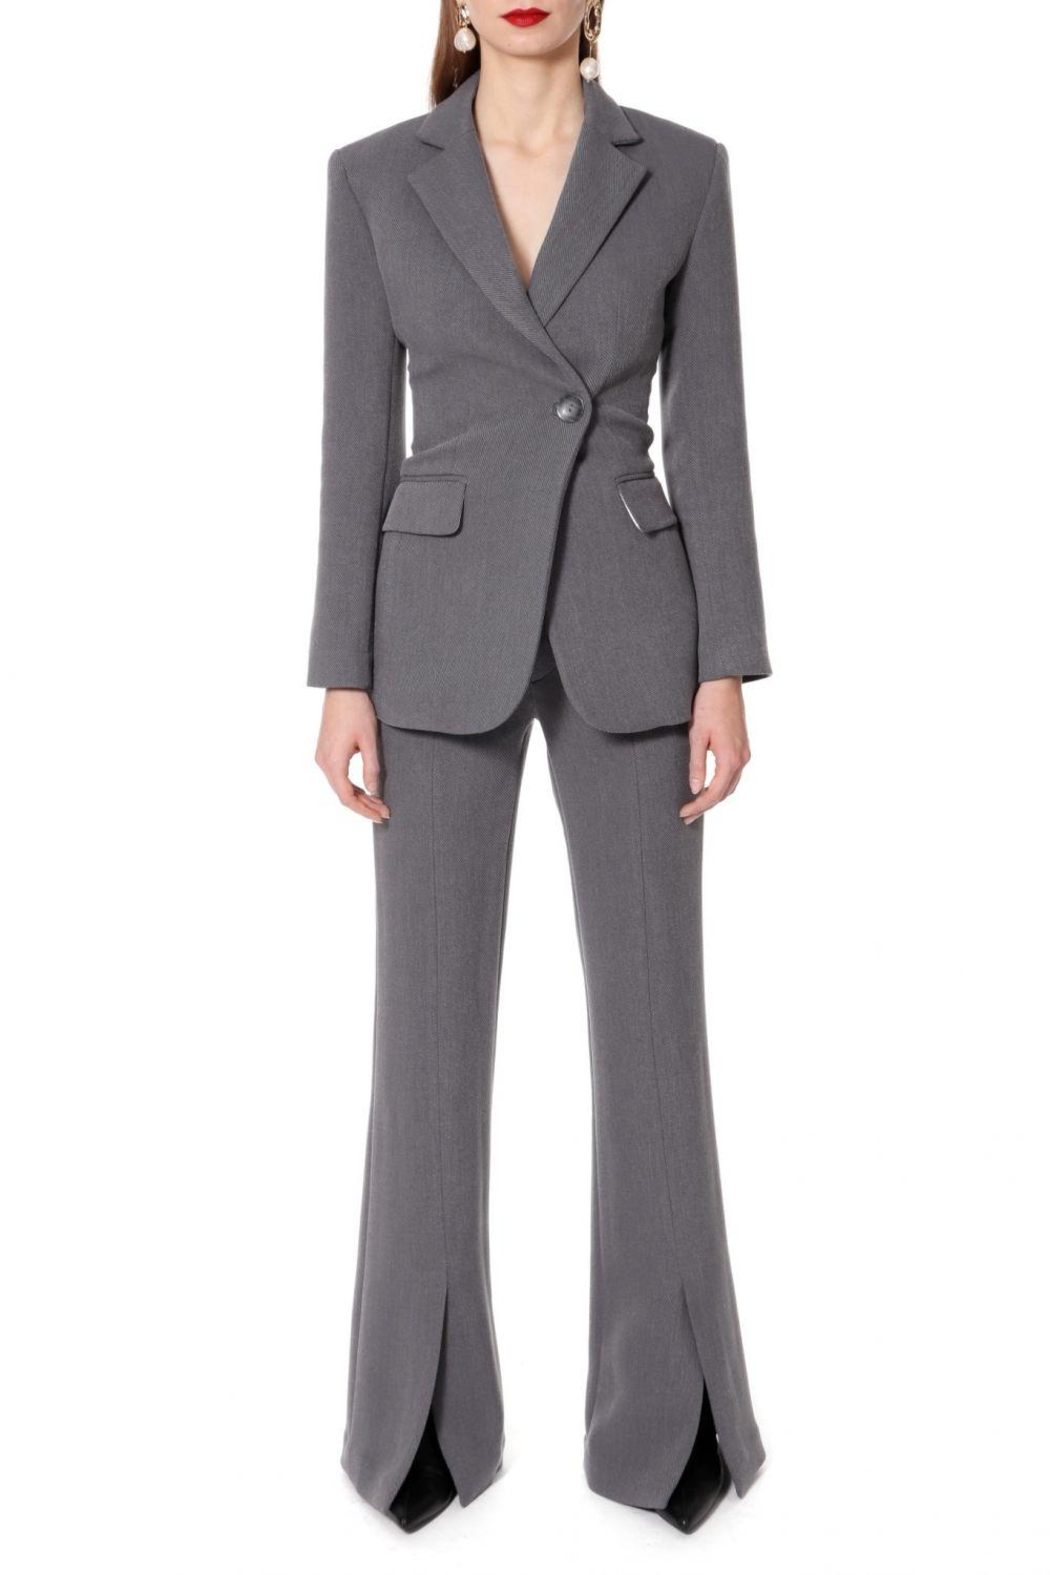 AGGI Pants Monica Baltic Grey - Height 175 - Side Cropped Image